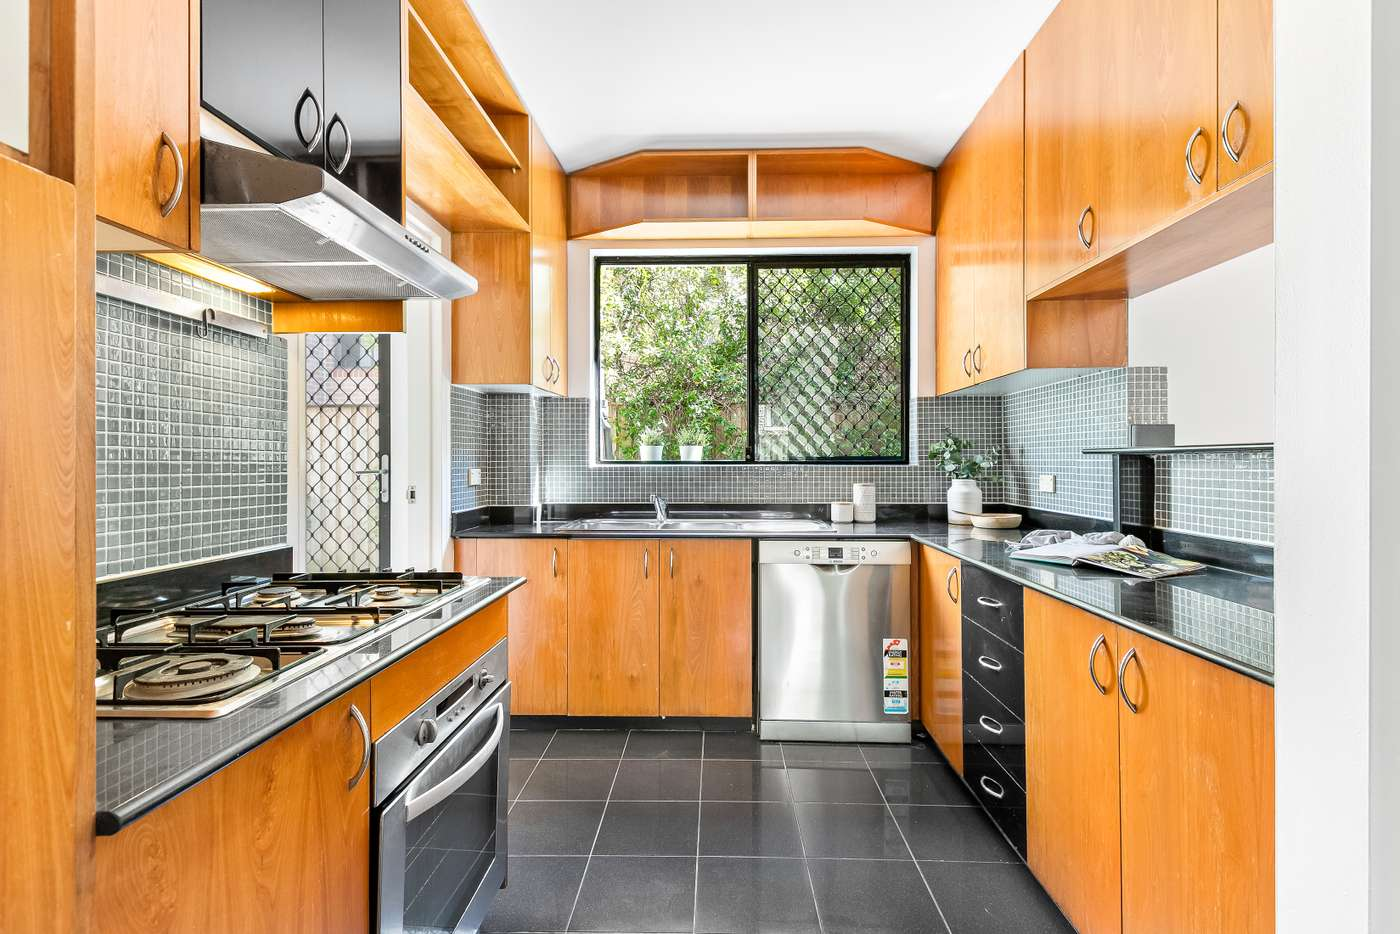 Fifth view of Homely apartment listing, 2/6-8 Onslow Street, Rose Bay NSW 2029